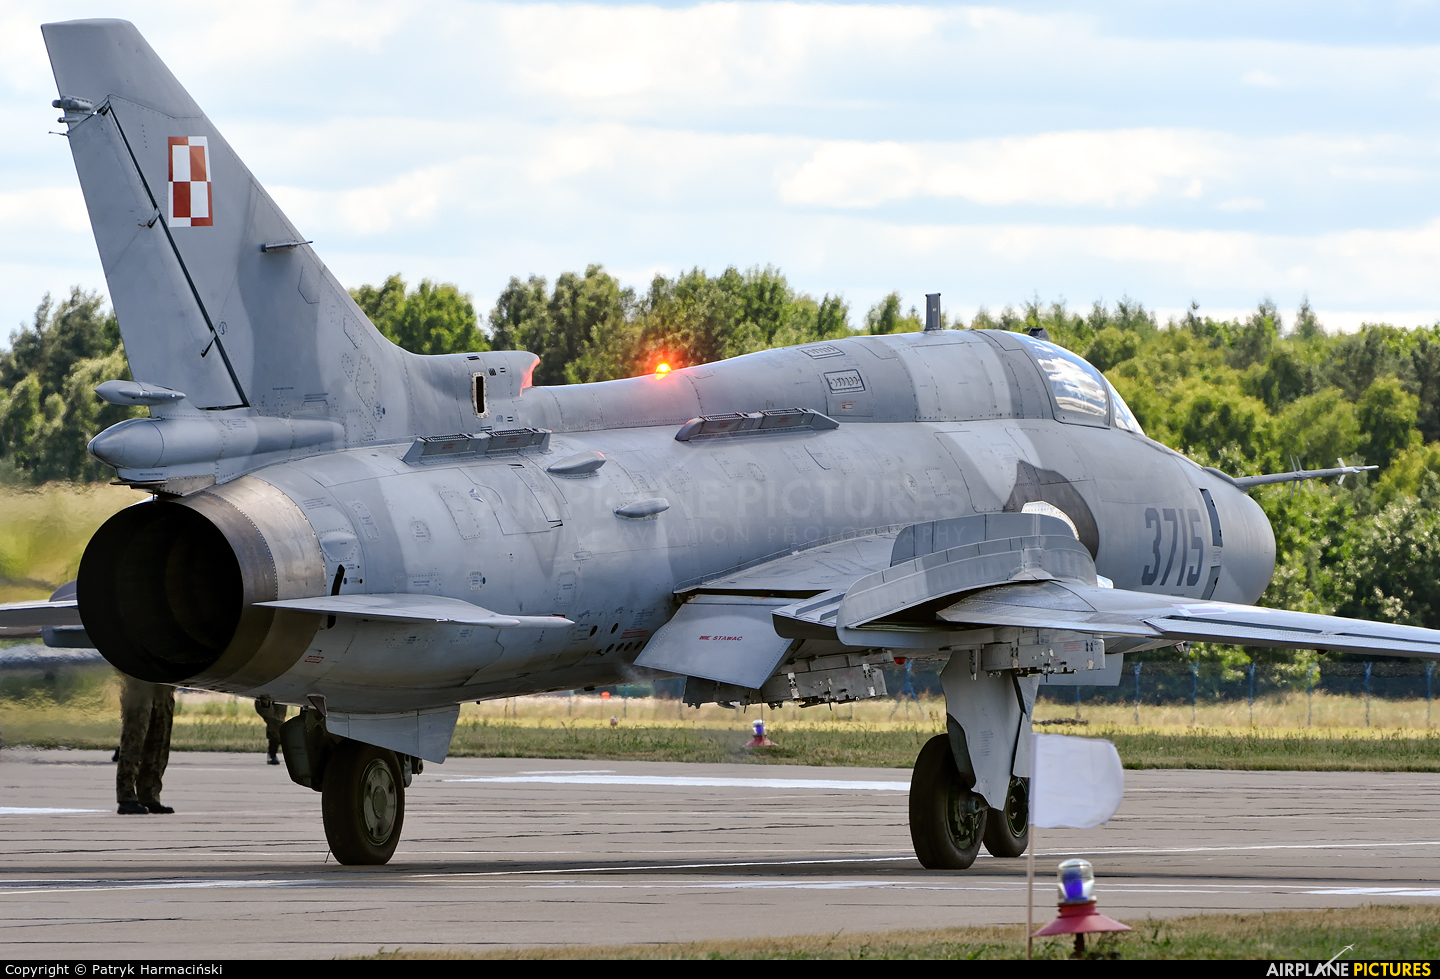 Poland - Air Force 3715 aircraft at Świdwin